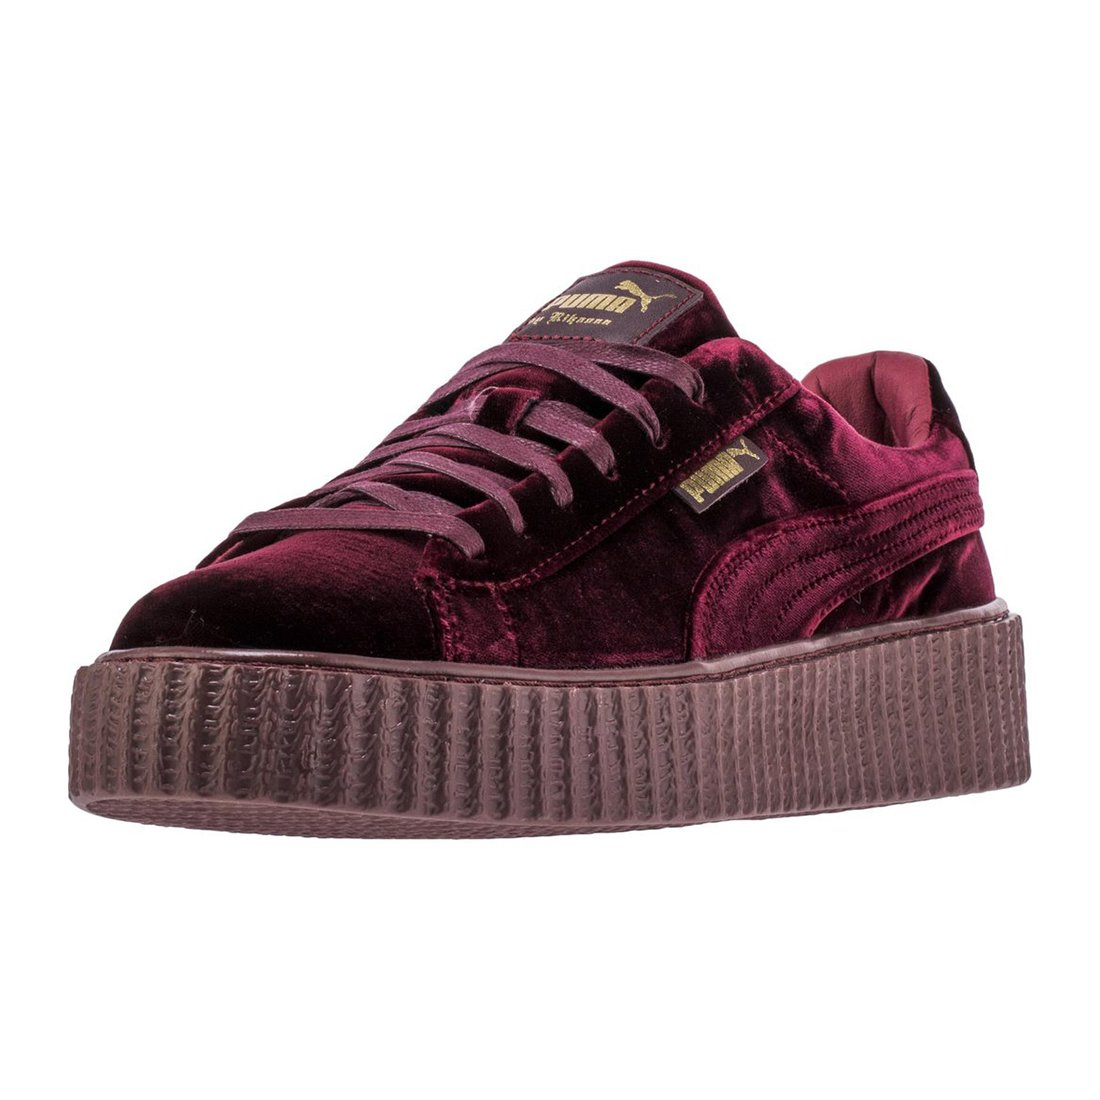 outlet store a242d 3c2cb PUMA Select Men's Creepers Velvet X Fenty by Rihanna